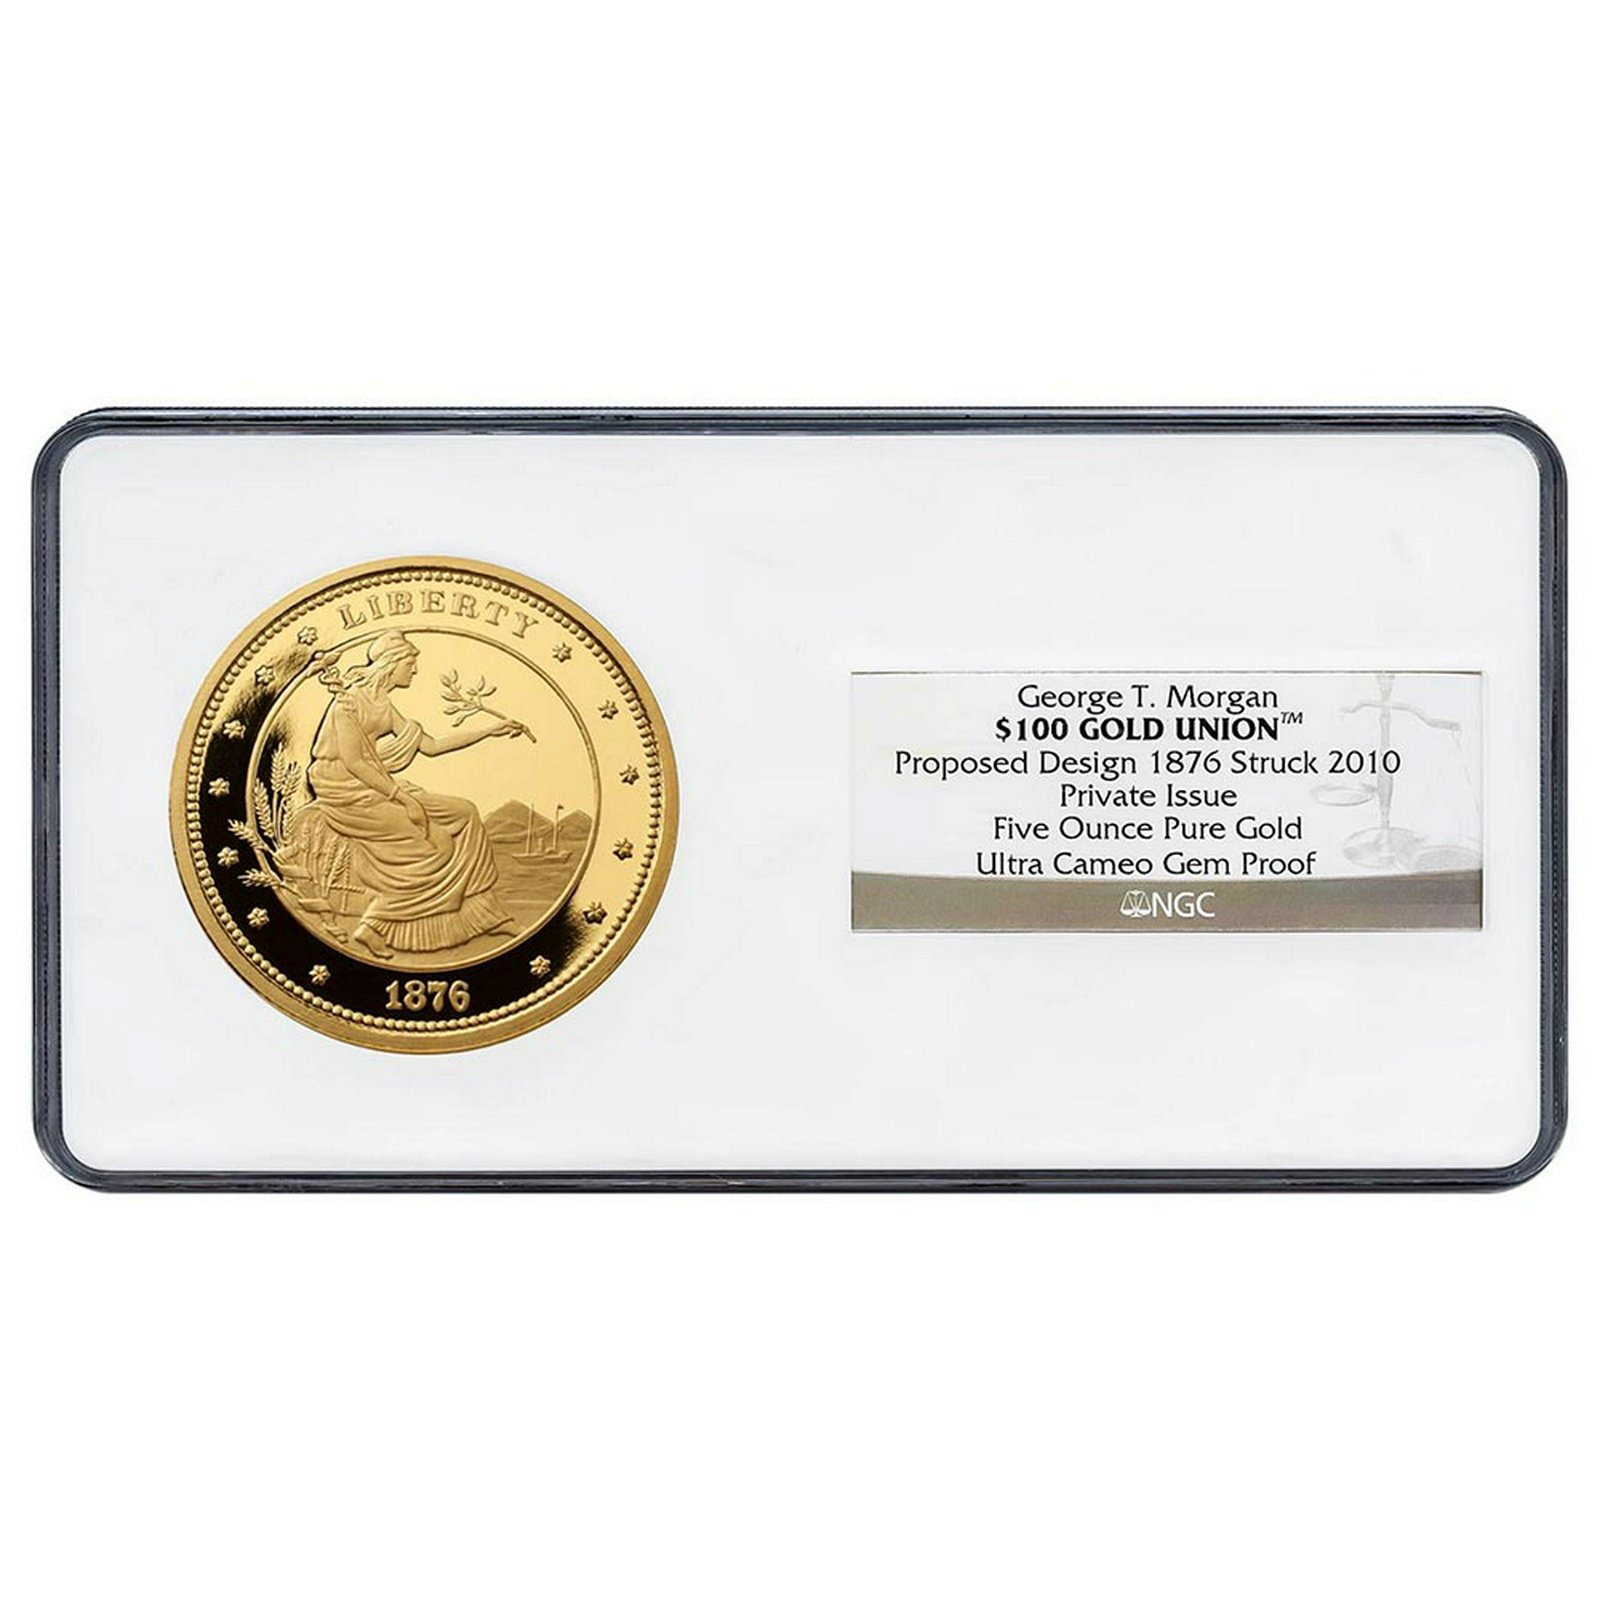 Certified $100 Gold Union Five Ounce Proposed 1876 Desi